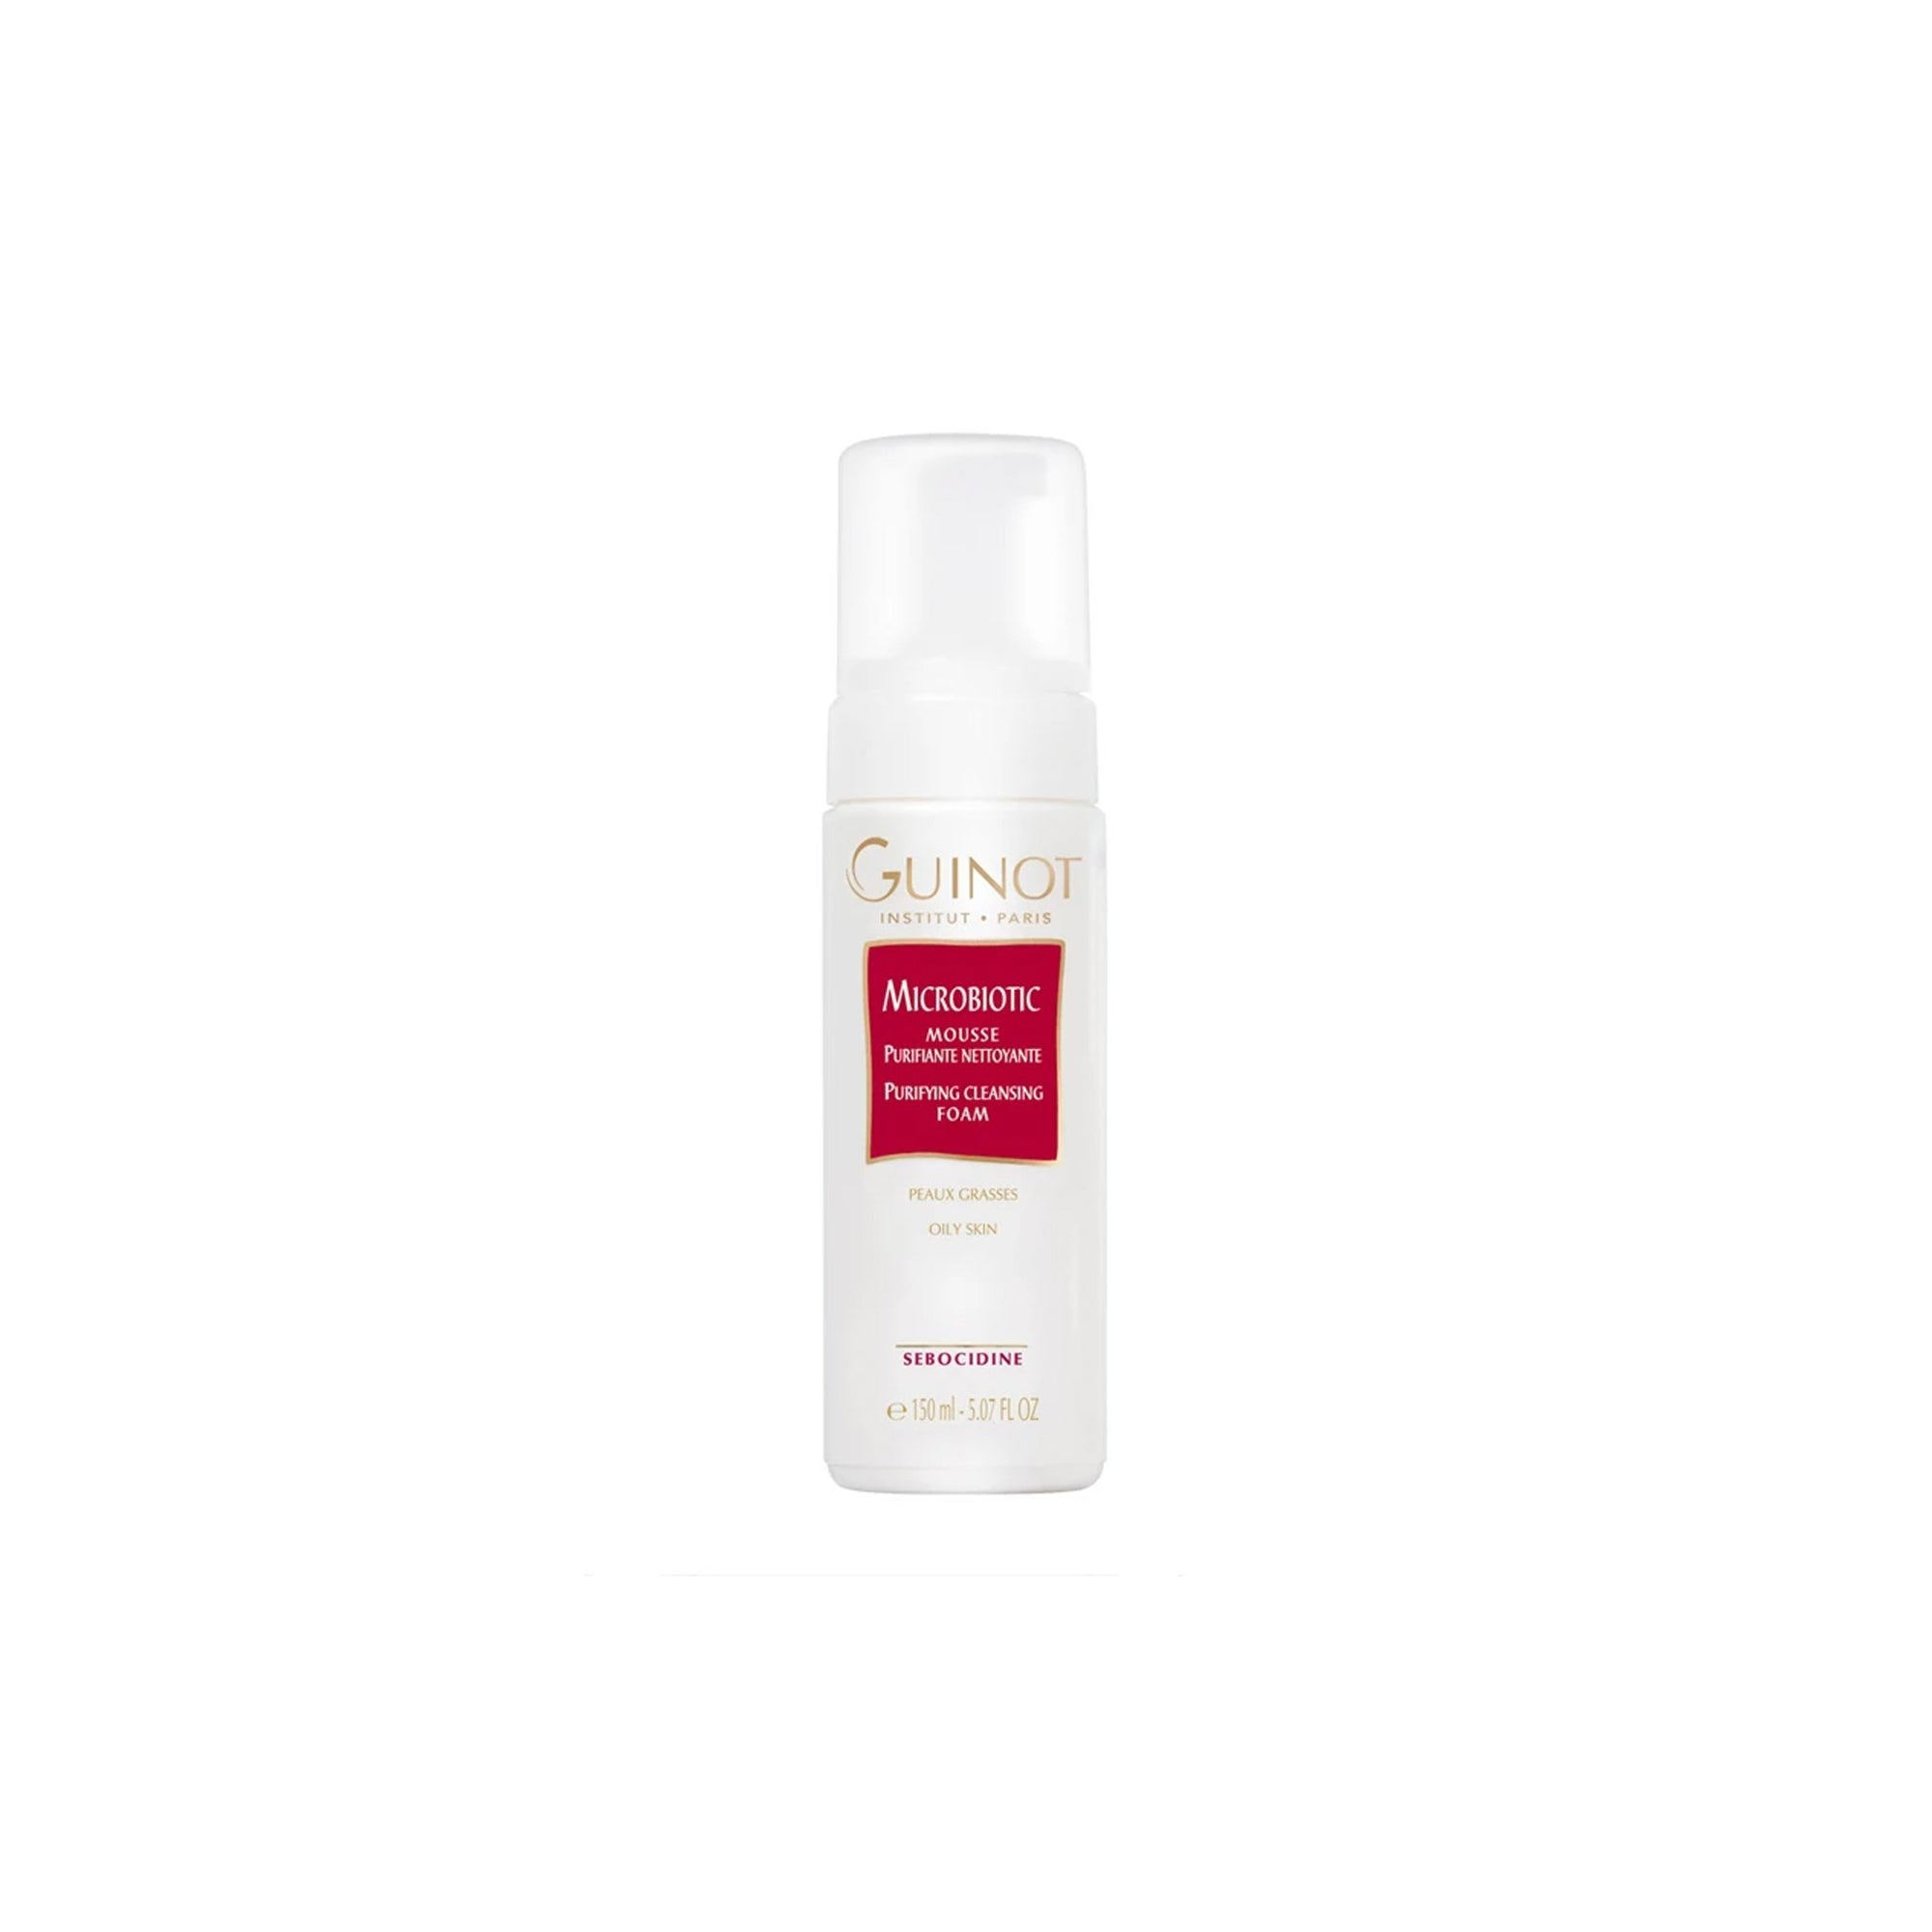 Guinot Microbiotic Foam 150ml